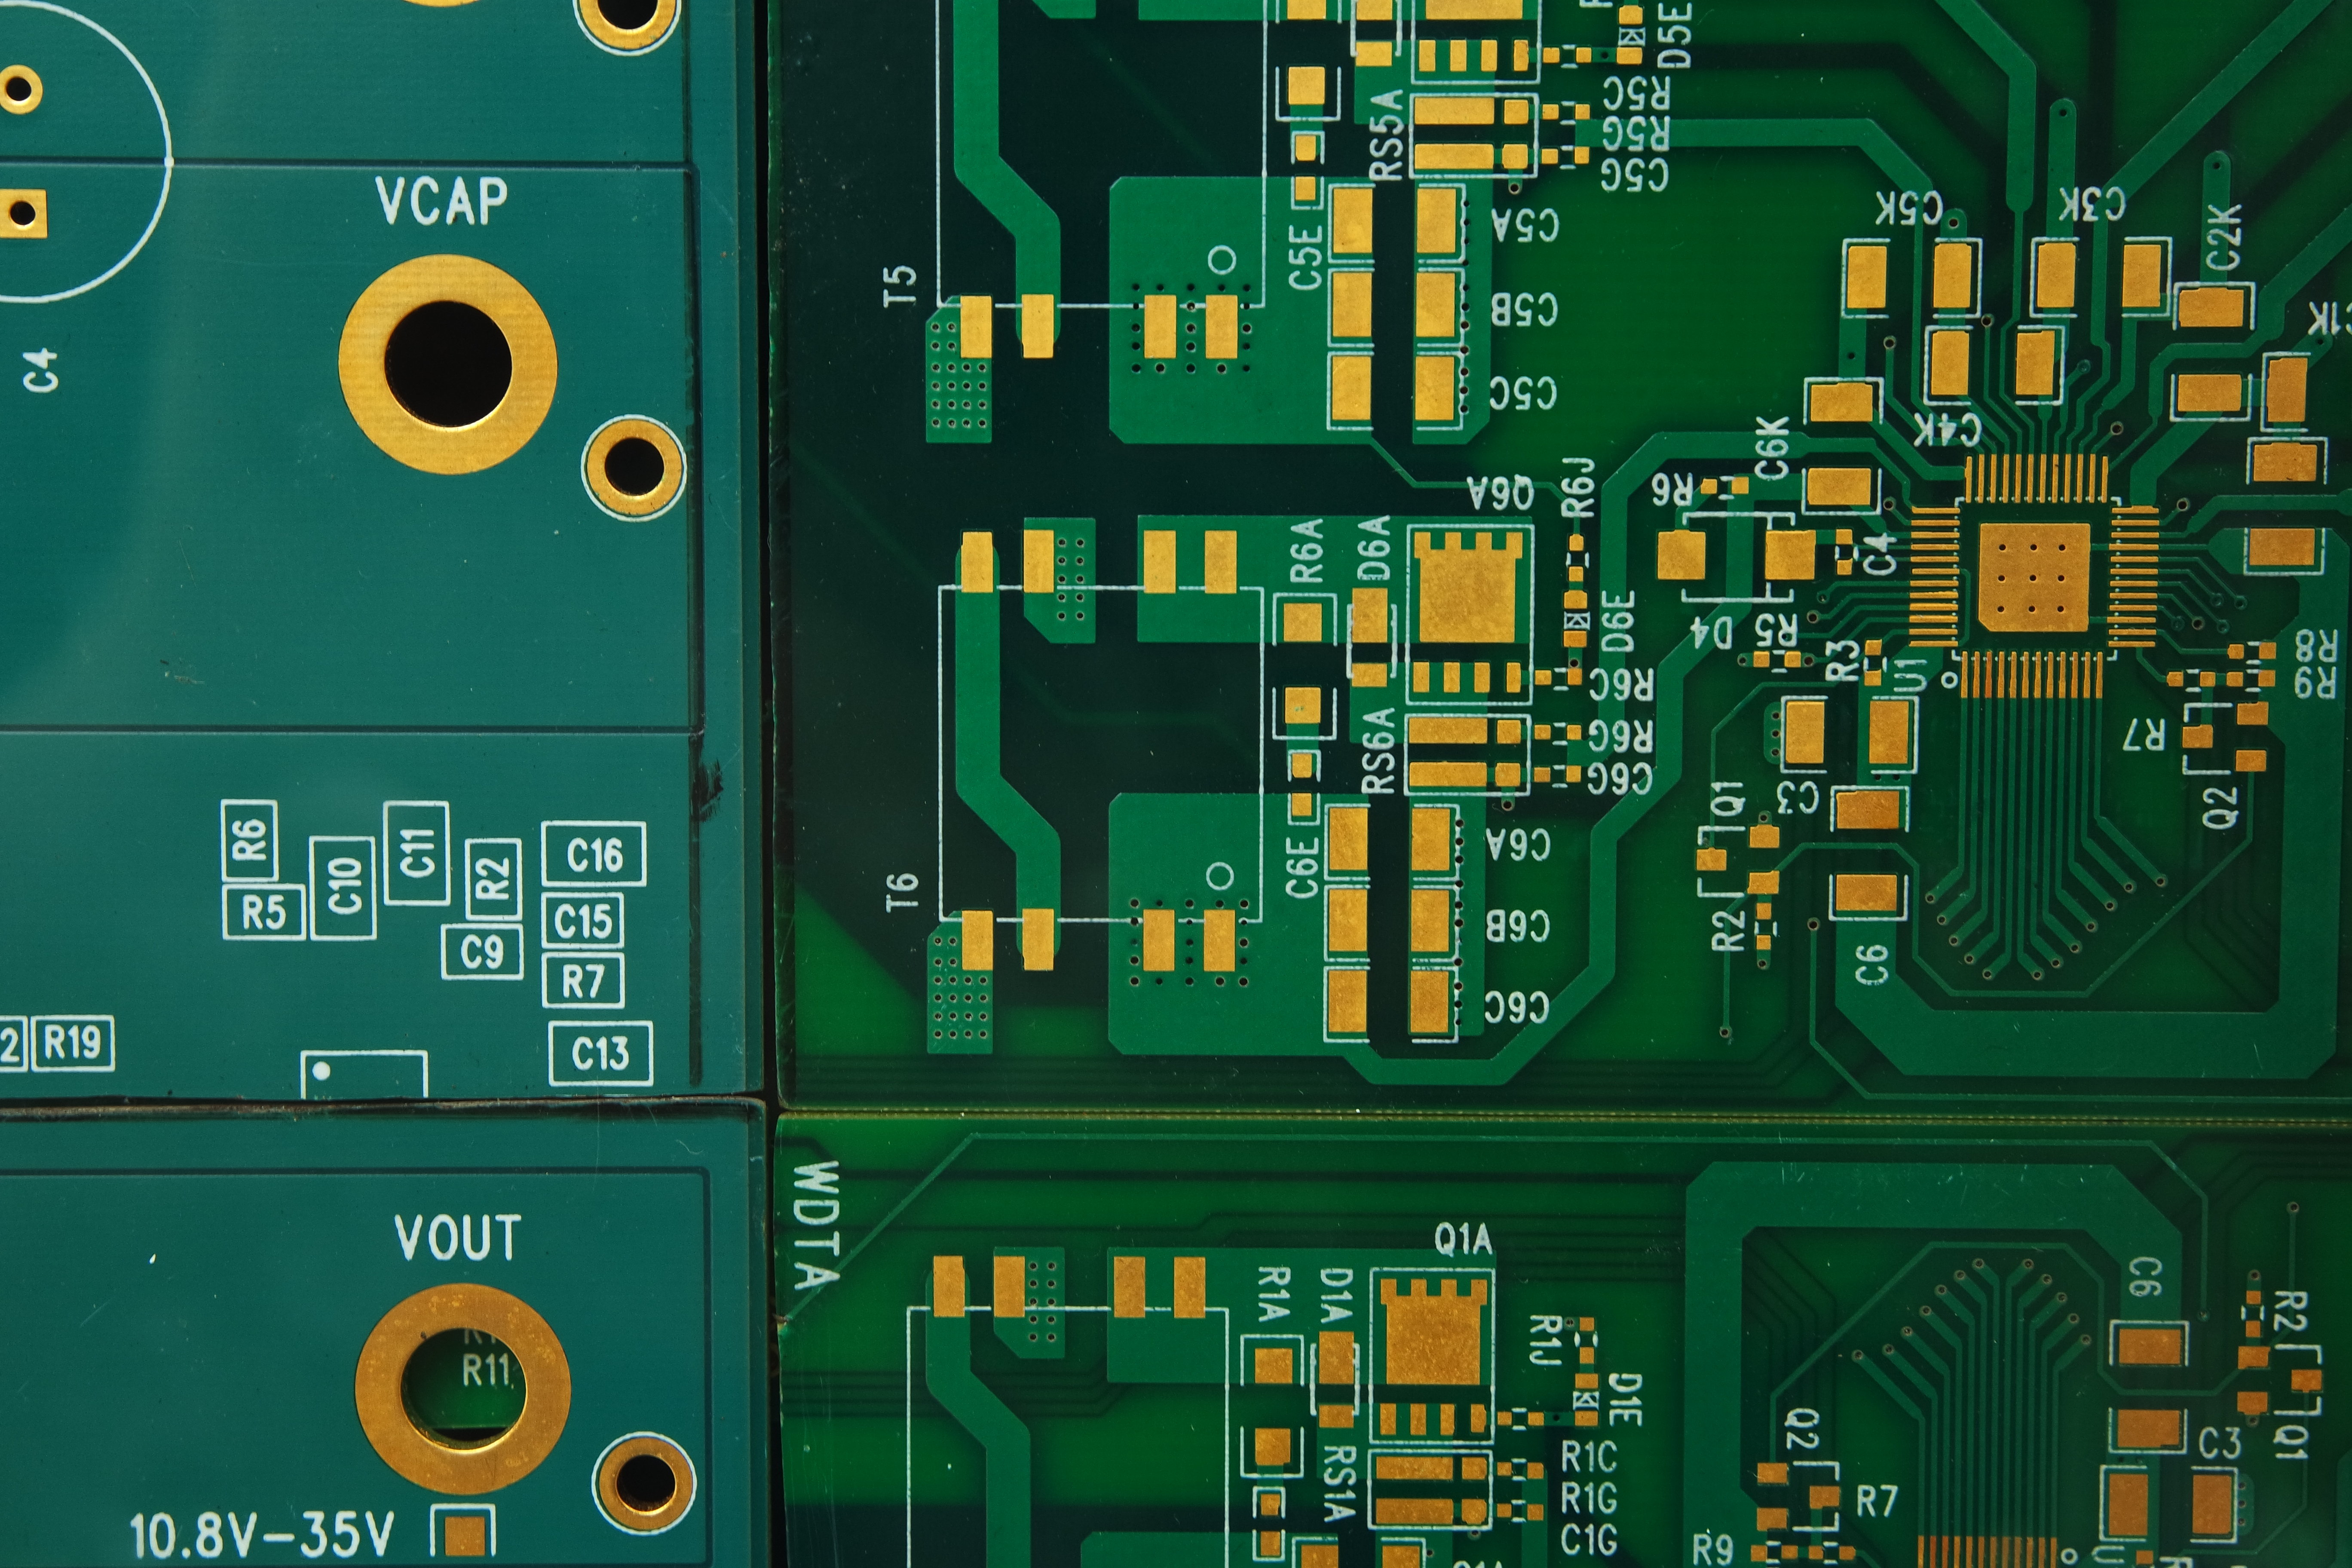 A sample photo of an empty circuitboard shot by the Samsung NX3000.